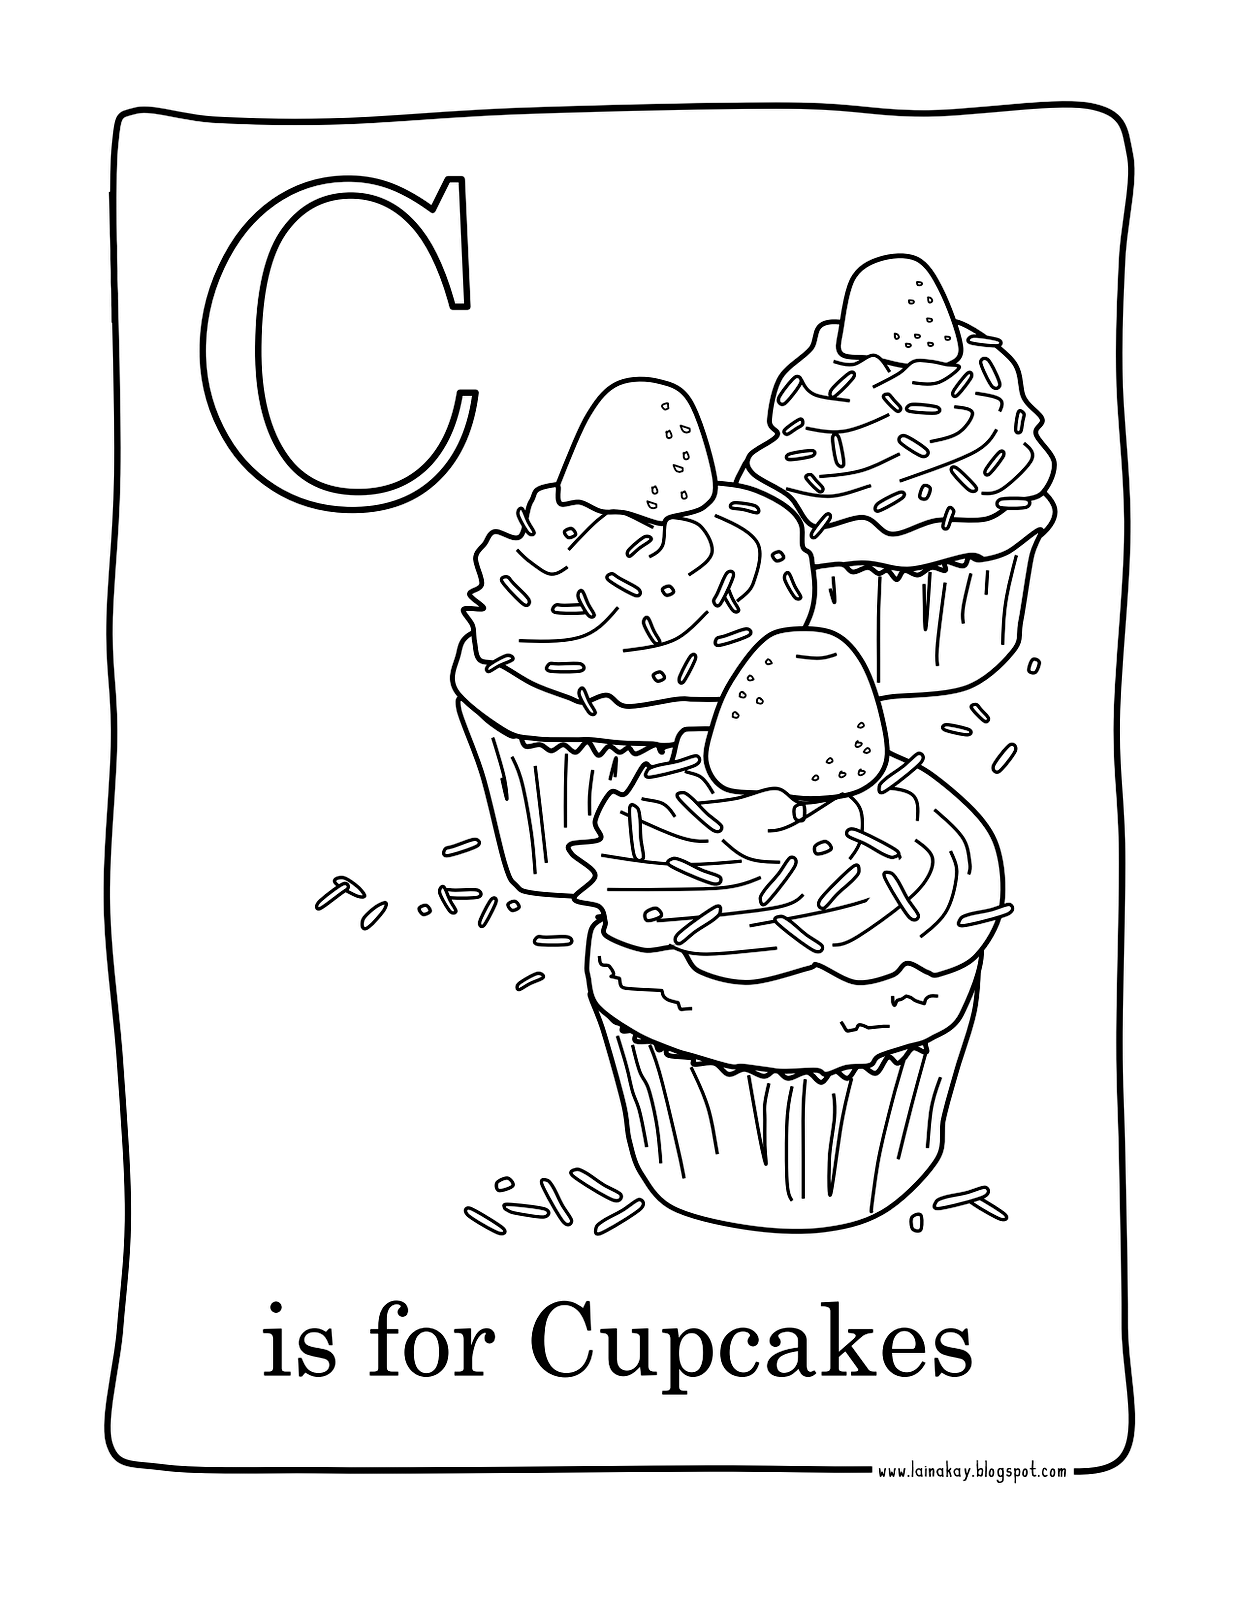 Learning the alphabet with cupcakes